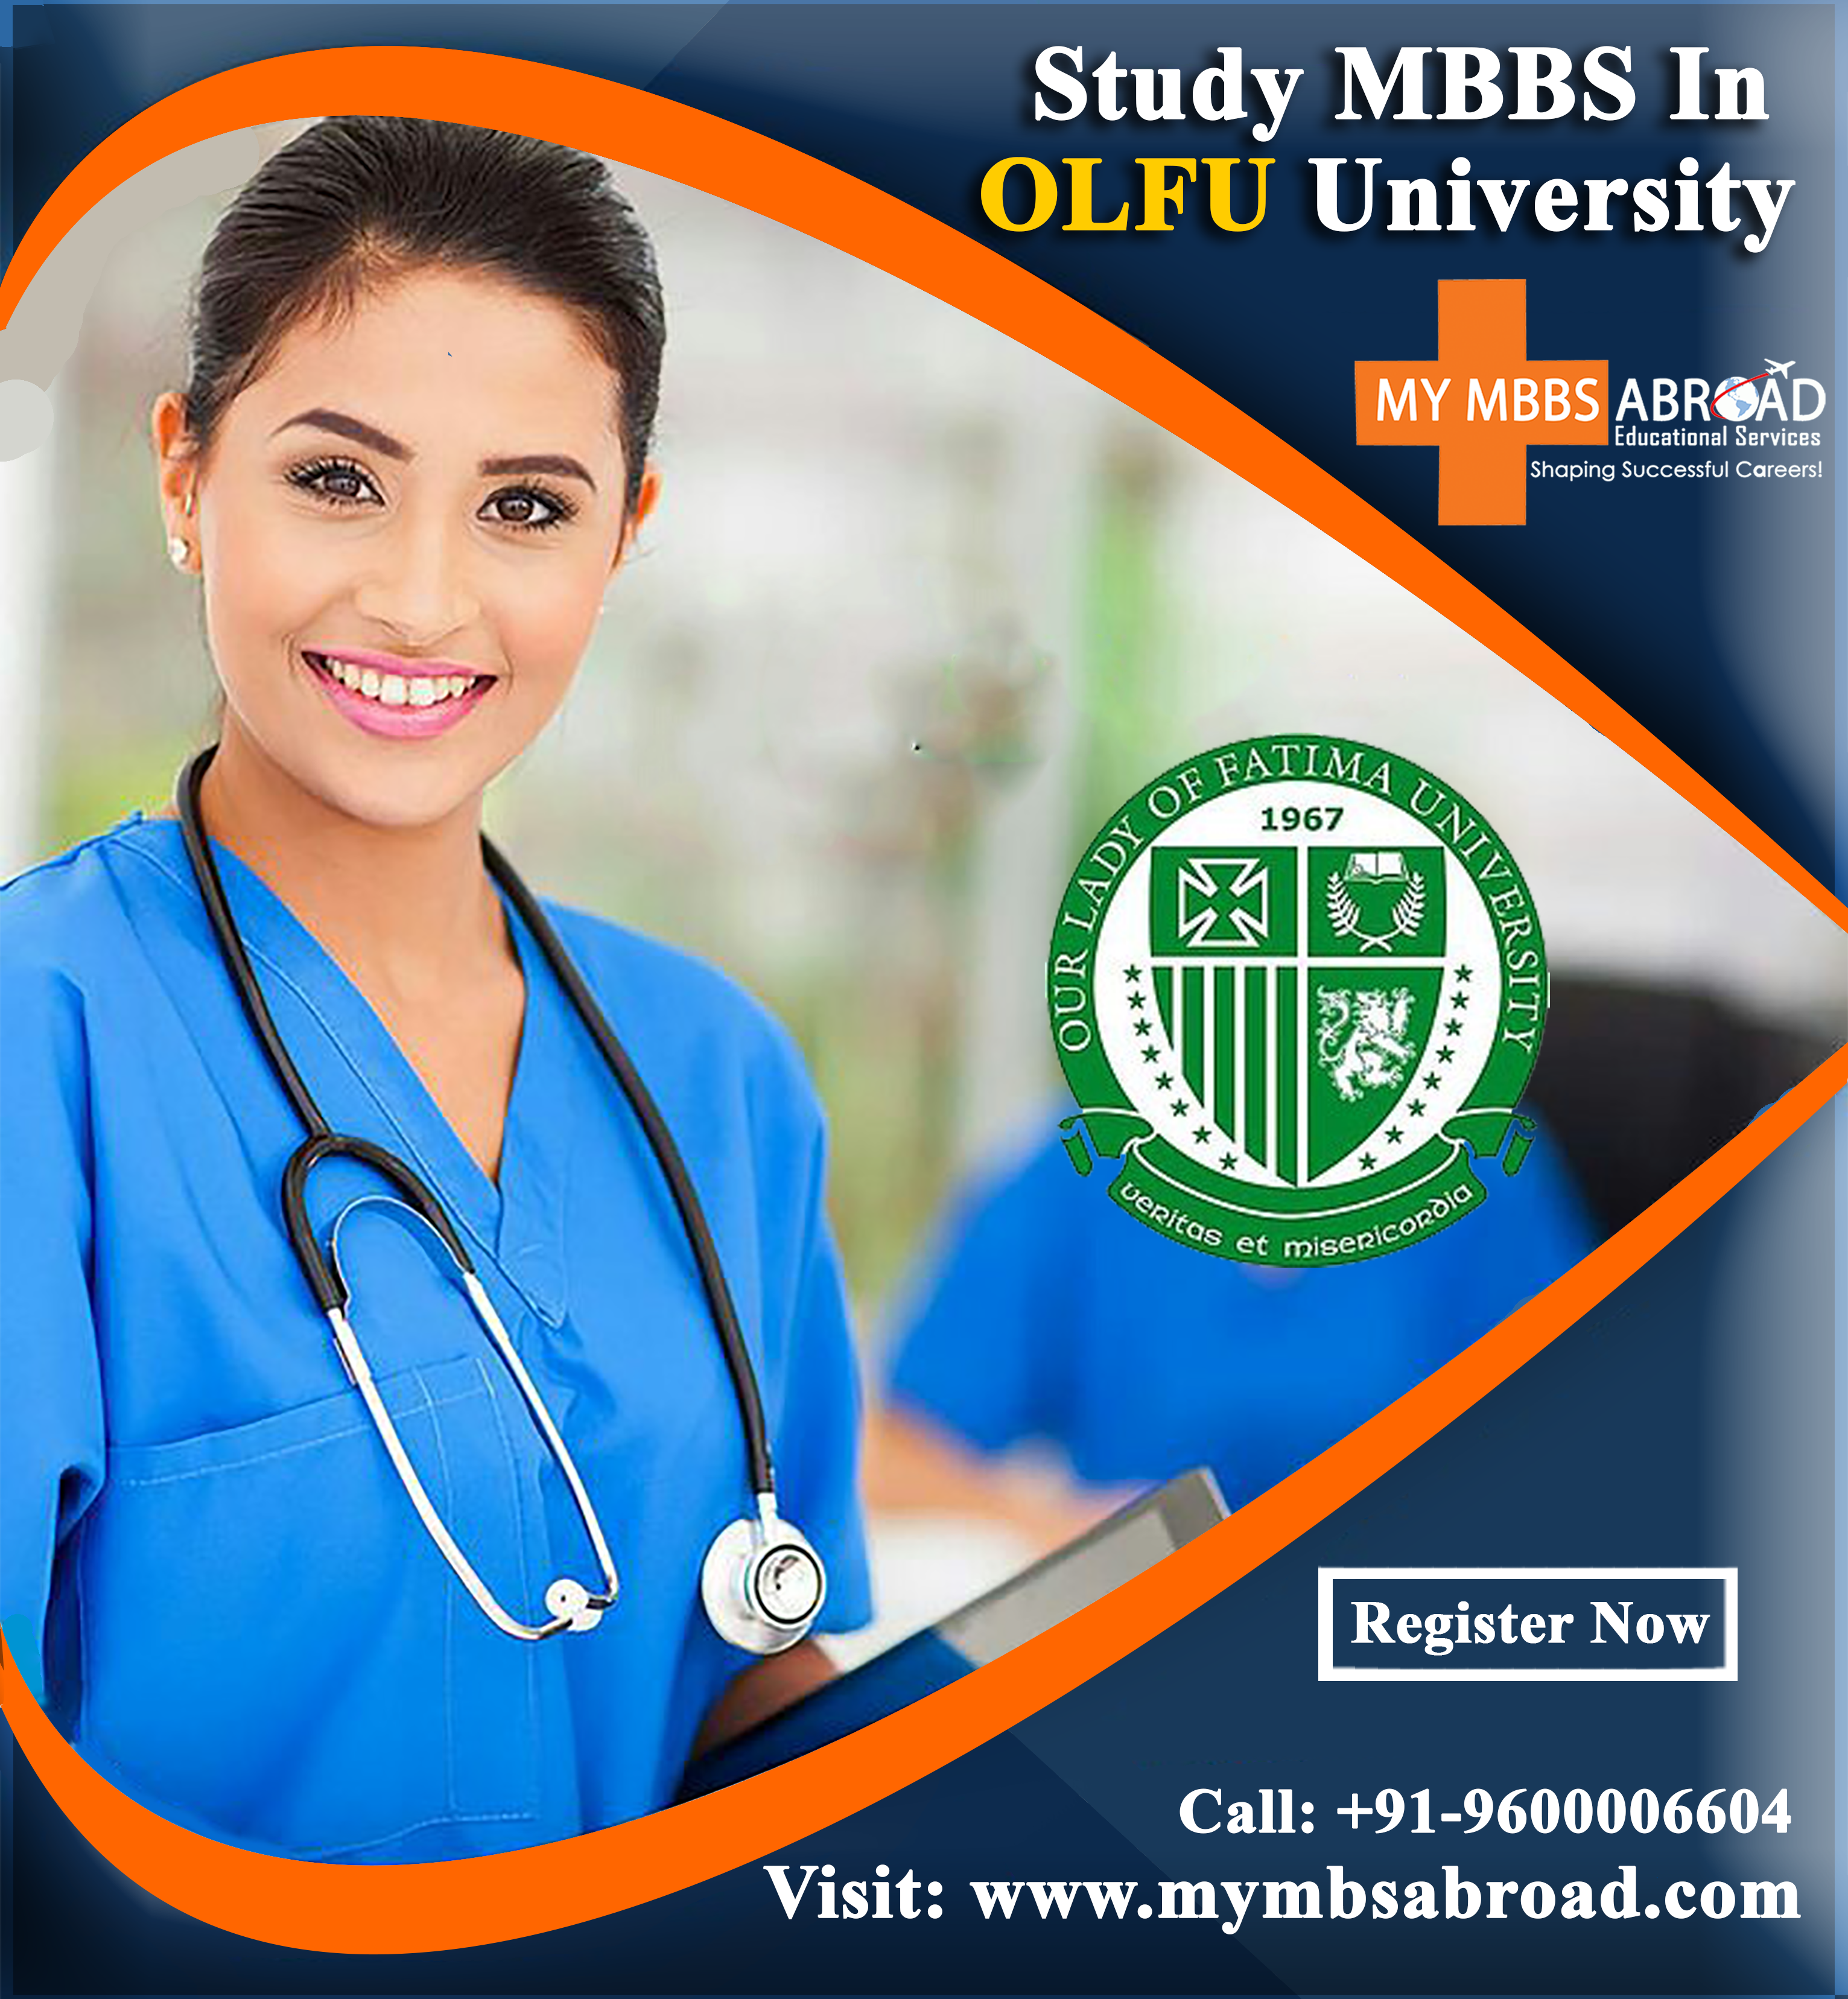 Apply Now For Mcirecognized Mbbsdegree From Ourladyoffatimauniversity Become A Doctor In Philippines Aff Education Educational Service Becoming A Doctor